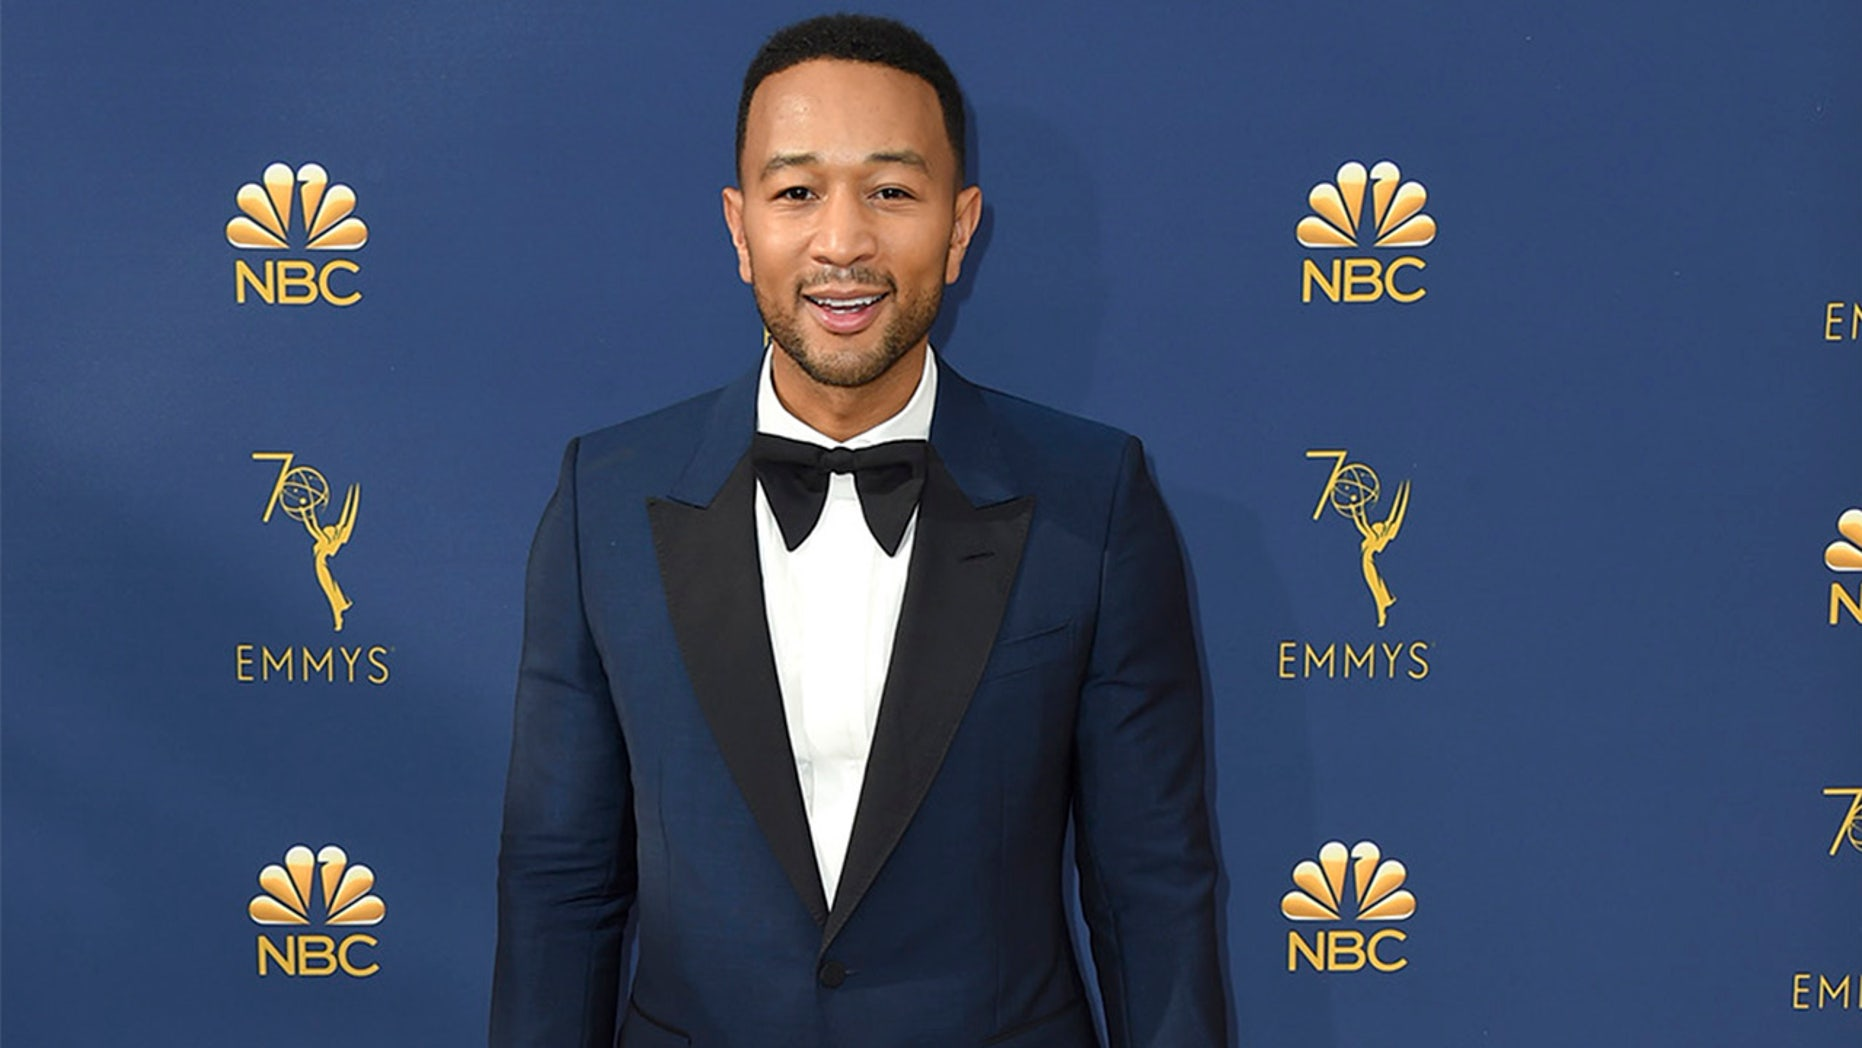 John Legend arrives at the 70th Primetime Emmy Awards on Monday, Sept. 17, 2018, at the Microsoft Theater in Los Angeles. (Photo by Jordan Strauss/Invision/AP)